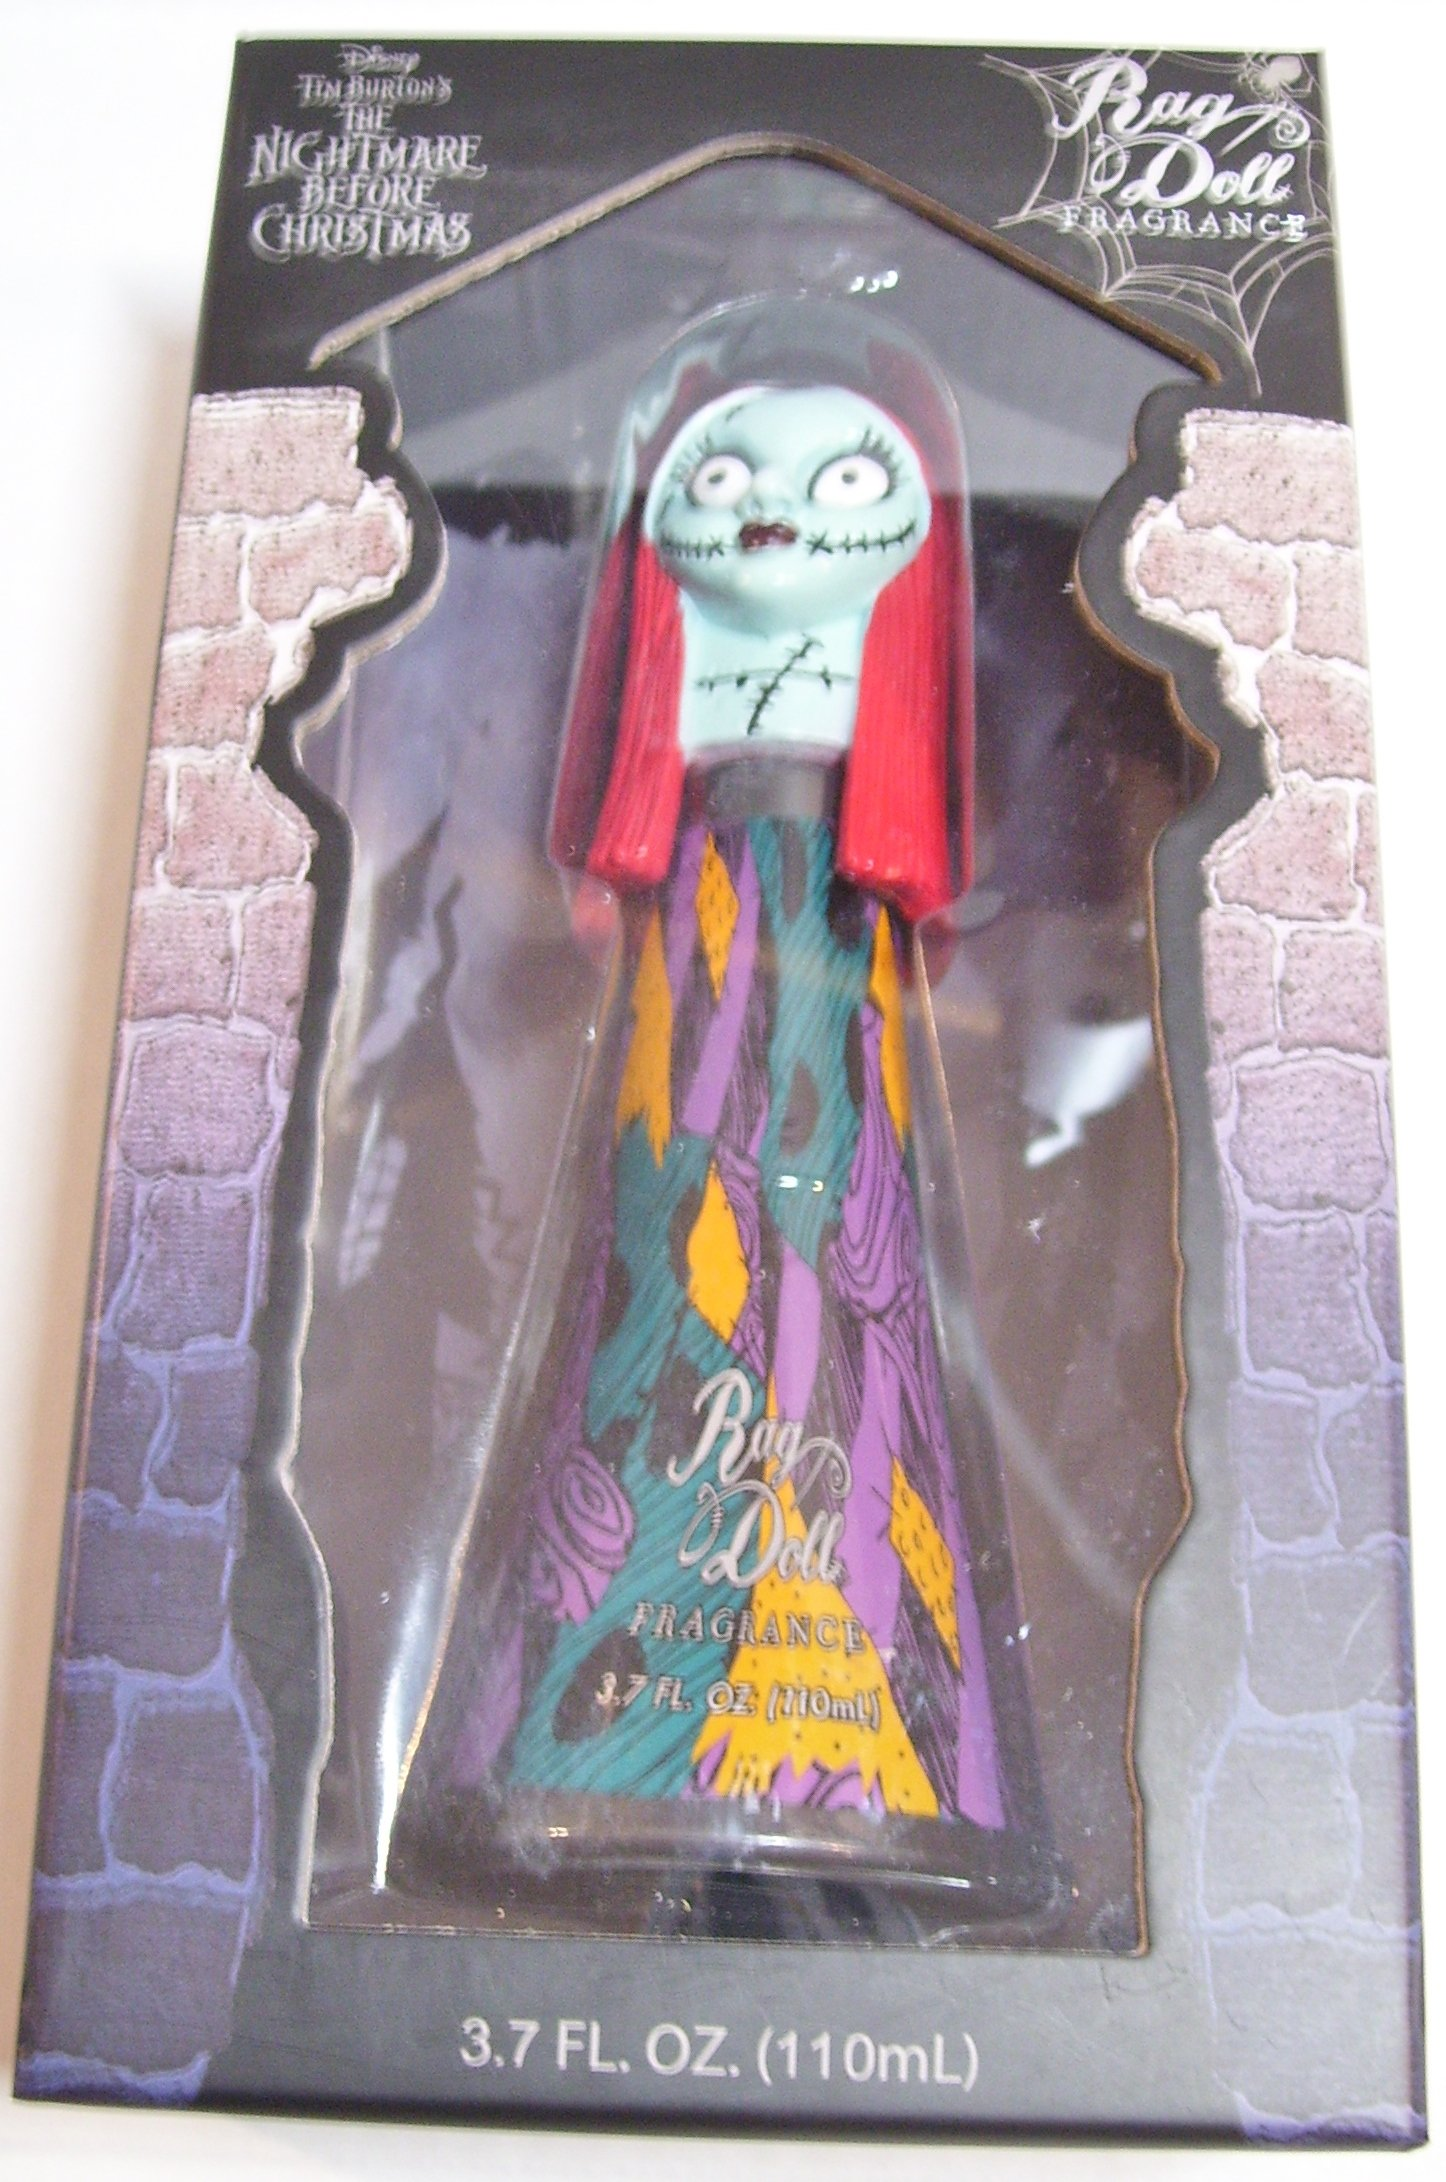 Nightmare Before Christmas RAG DOLL Perfume 3.7 oz in Decorative SALLY Bottle by Nightmare Before Christmas (Image #1)